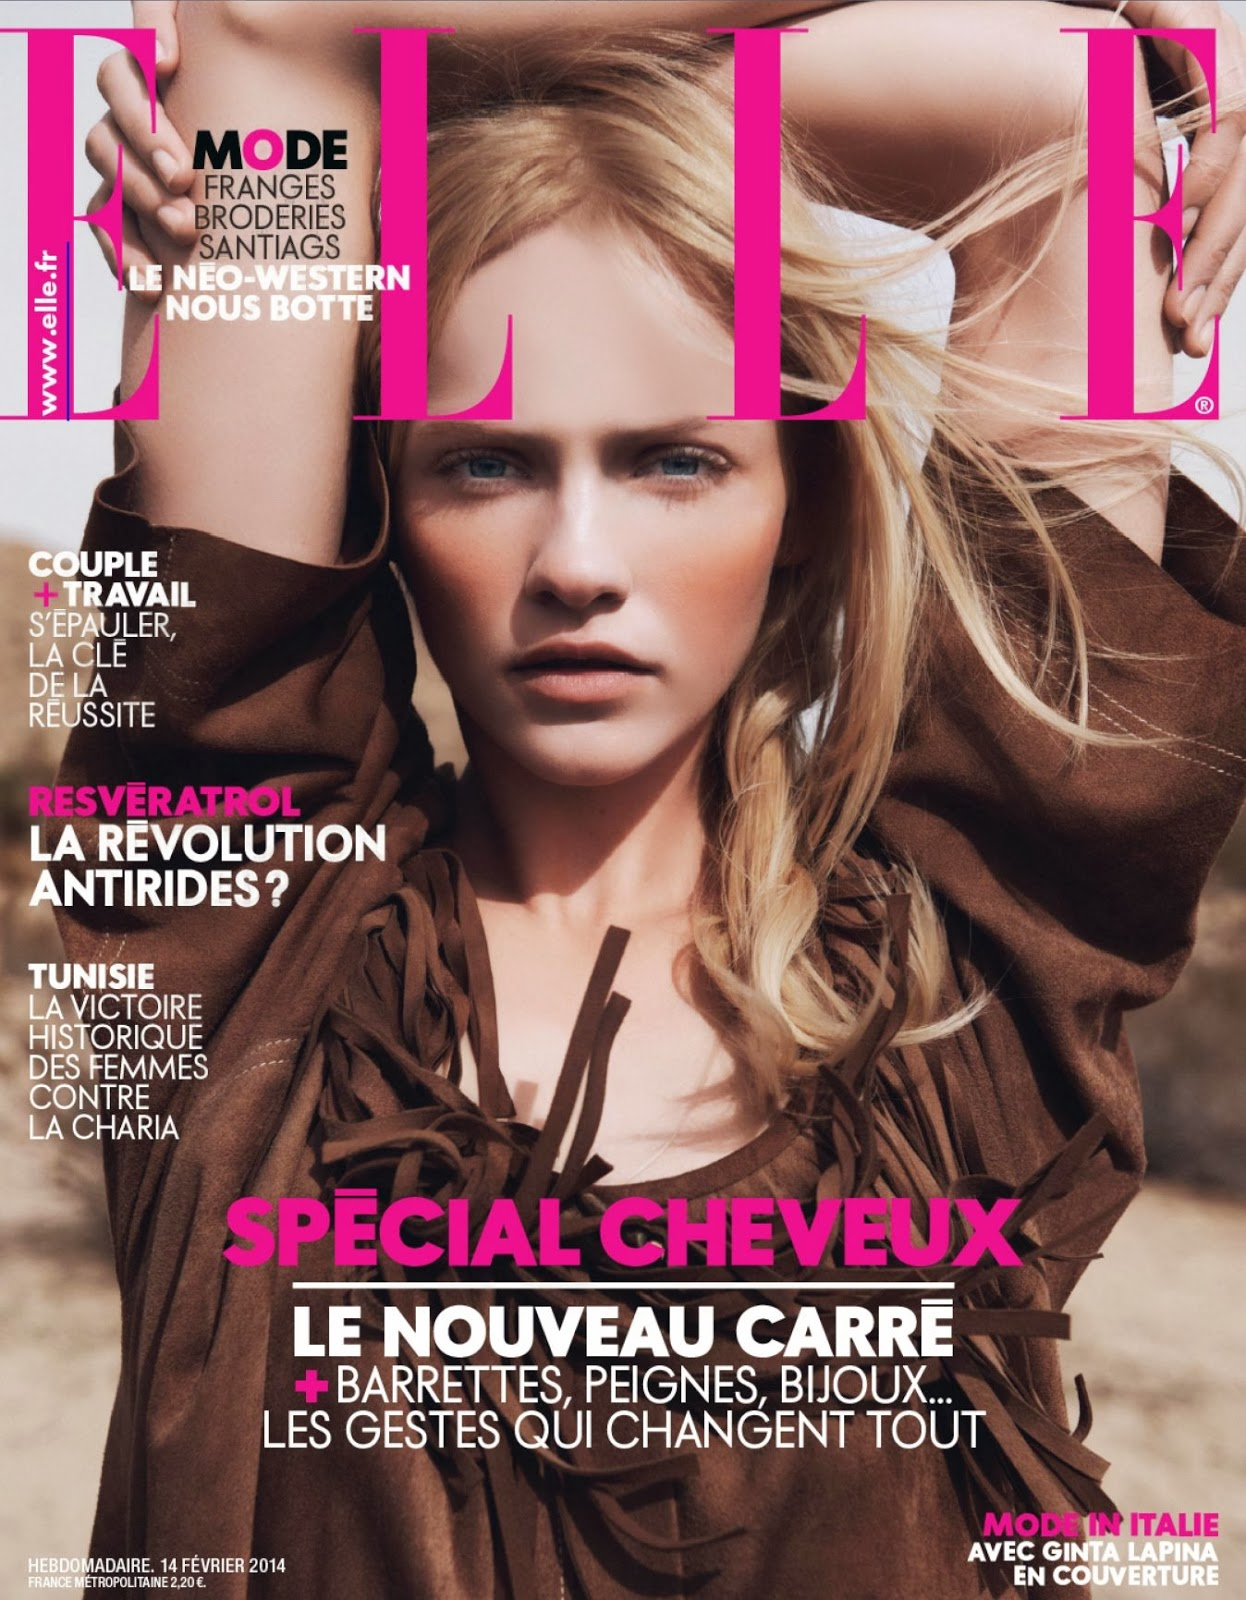 Ginta Lapina HQ Pictures Elle France Magazine Photoshoot February 2014